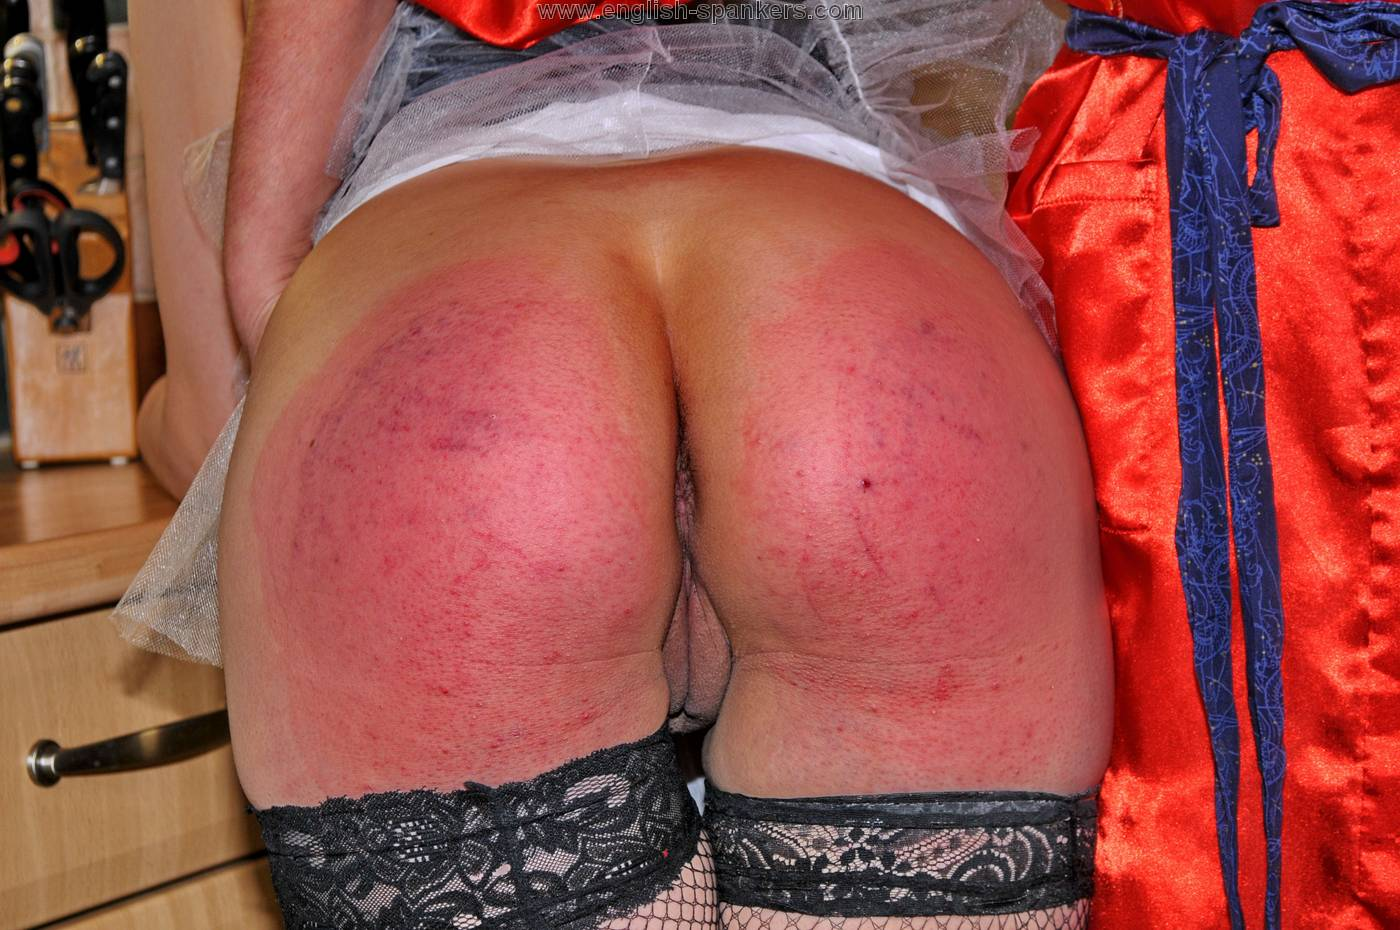 Spanked over panties